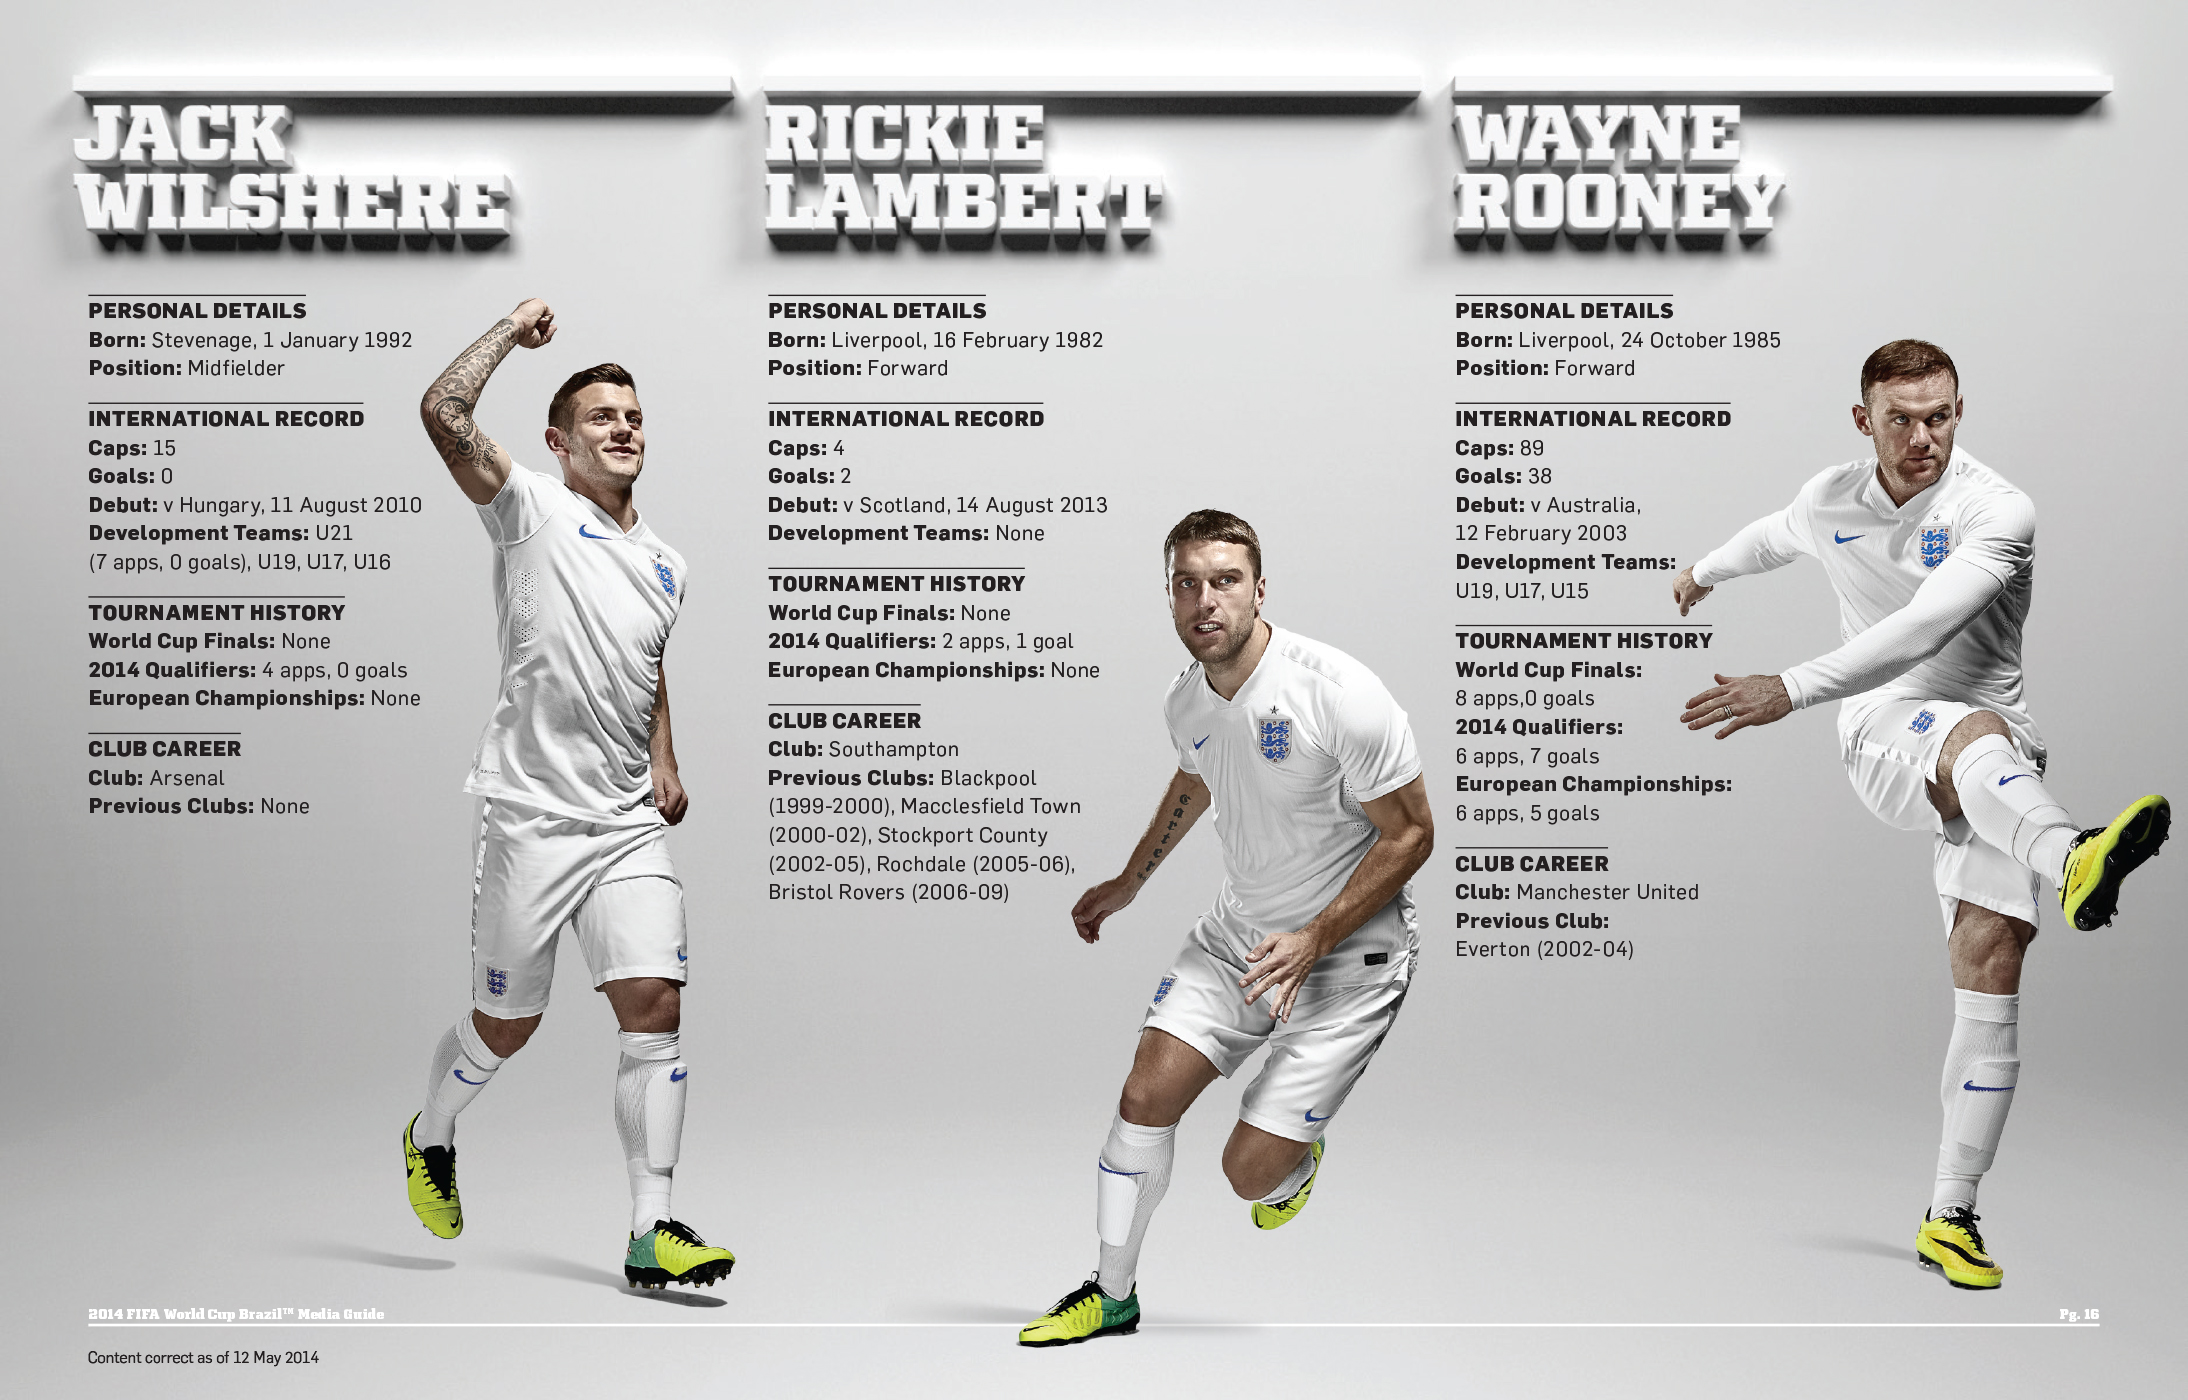 7967_World Cup Media Guide_v10_MID hires_Screen-2